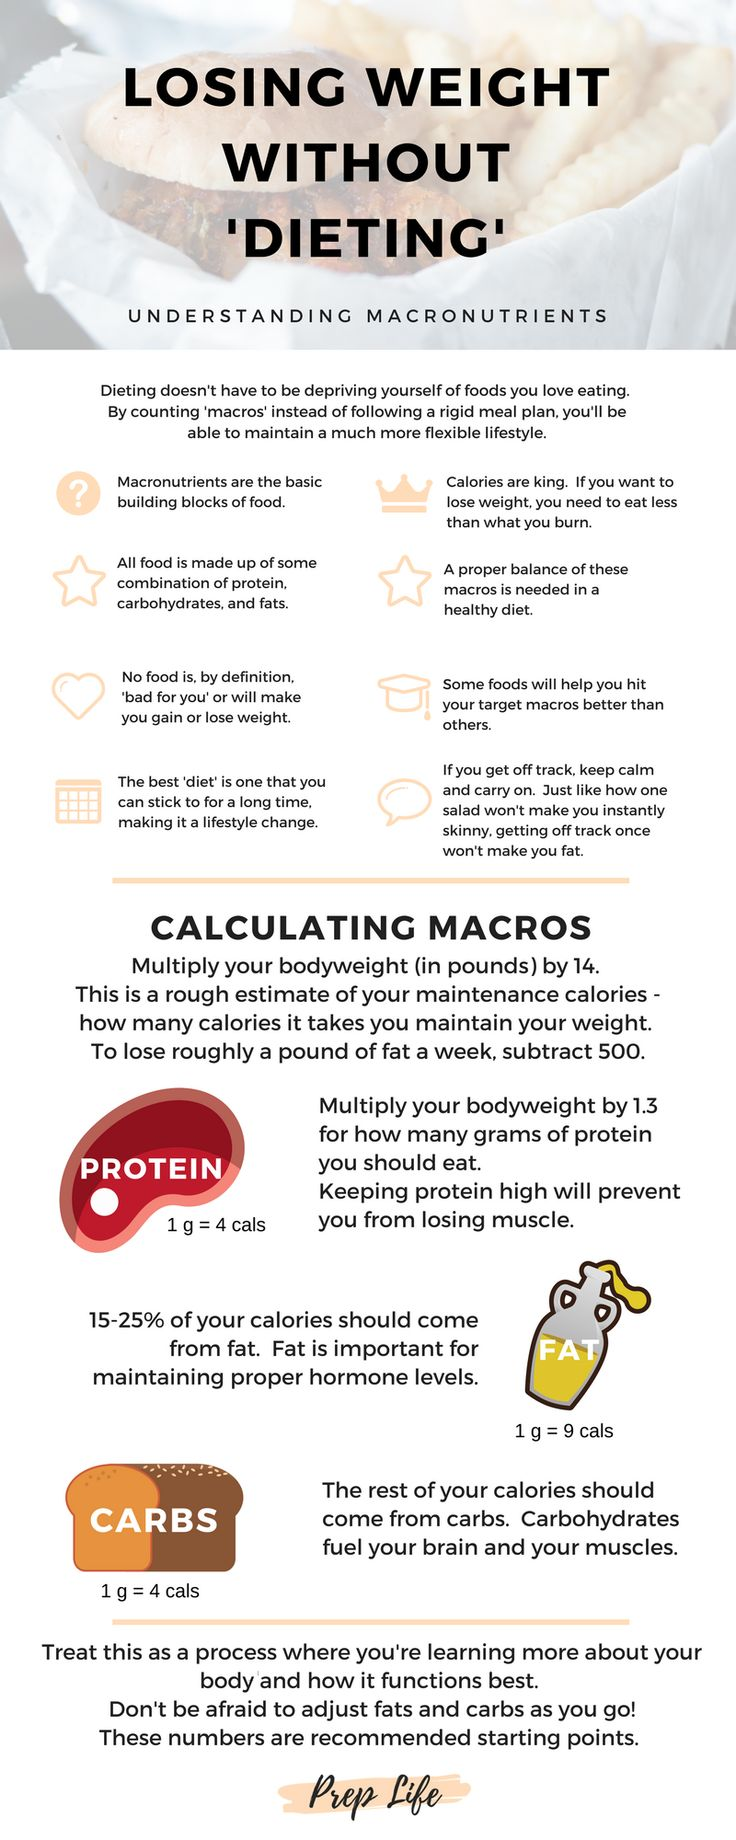 Losing weight without dieting infographic.  How to lose weight eating the foods you love - and keep it off!